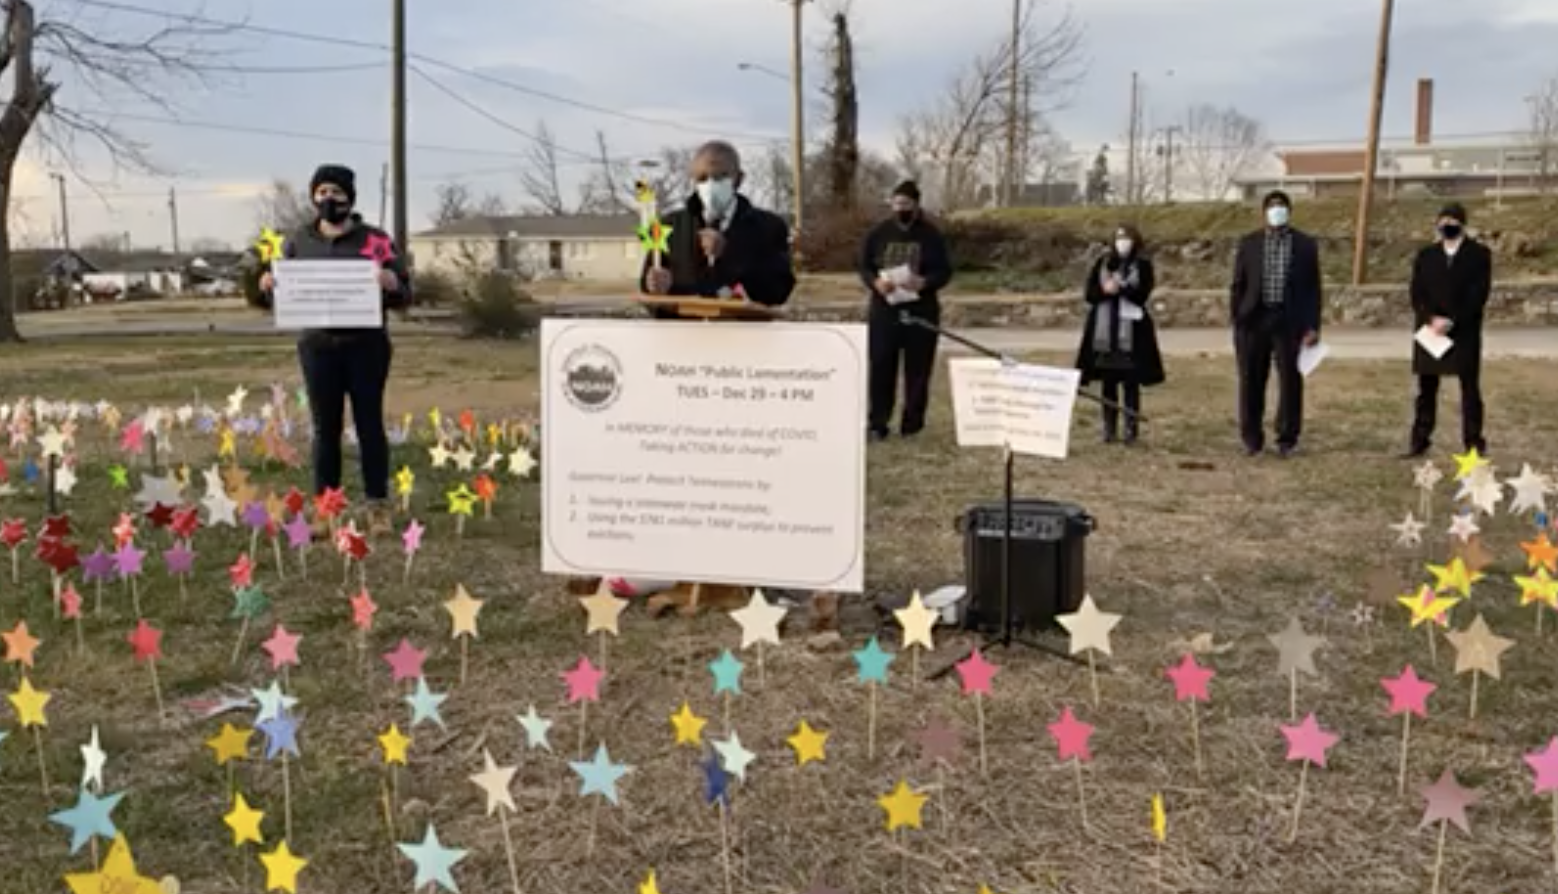 Rev. Edward Thompson, Chair of Nashville Organized for Action and Hope, leads a 'public lamentation' for Tennessee's COVID-19 victims. (Photo: NOAH)